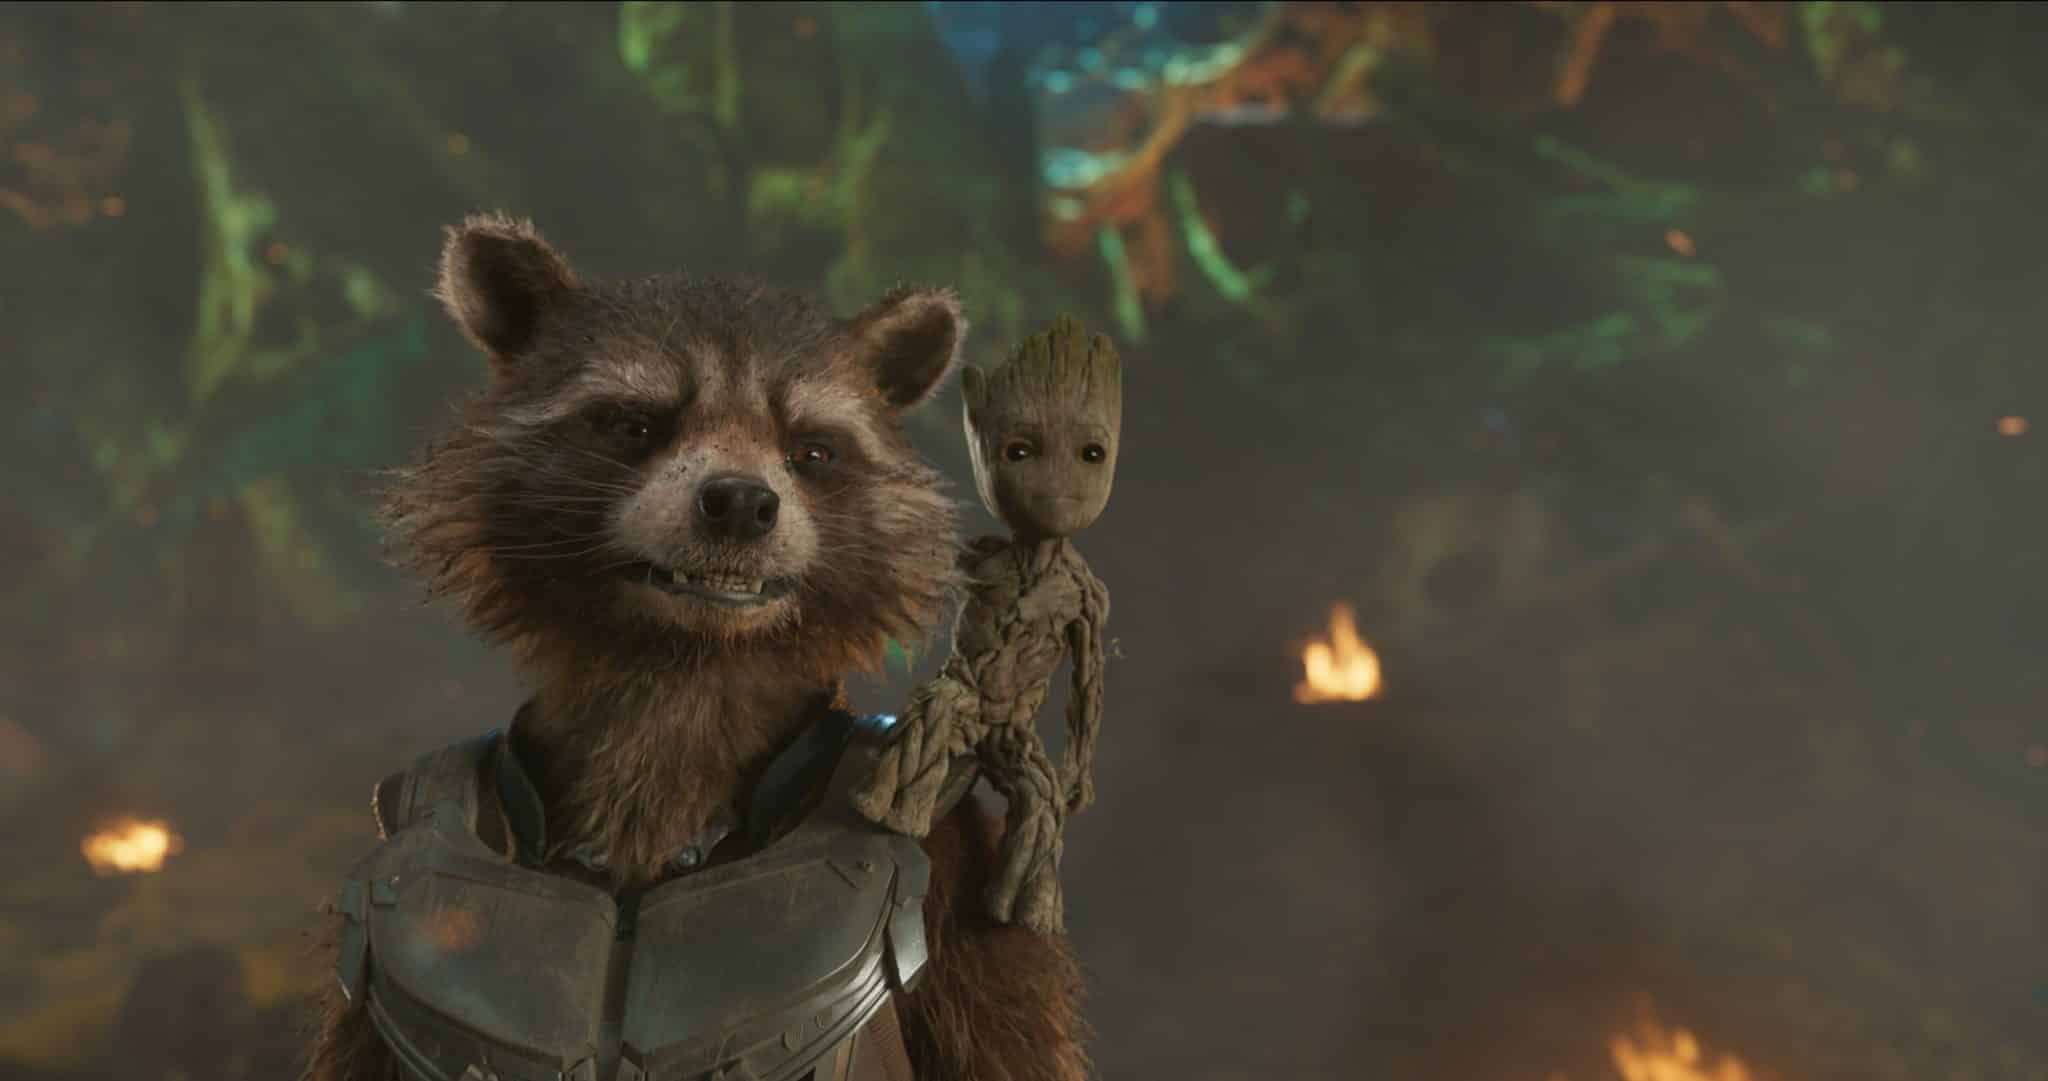 Extended Look for GUARDIANS OF THE GALAXY VOL. 2 Available! #GOTG2